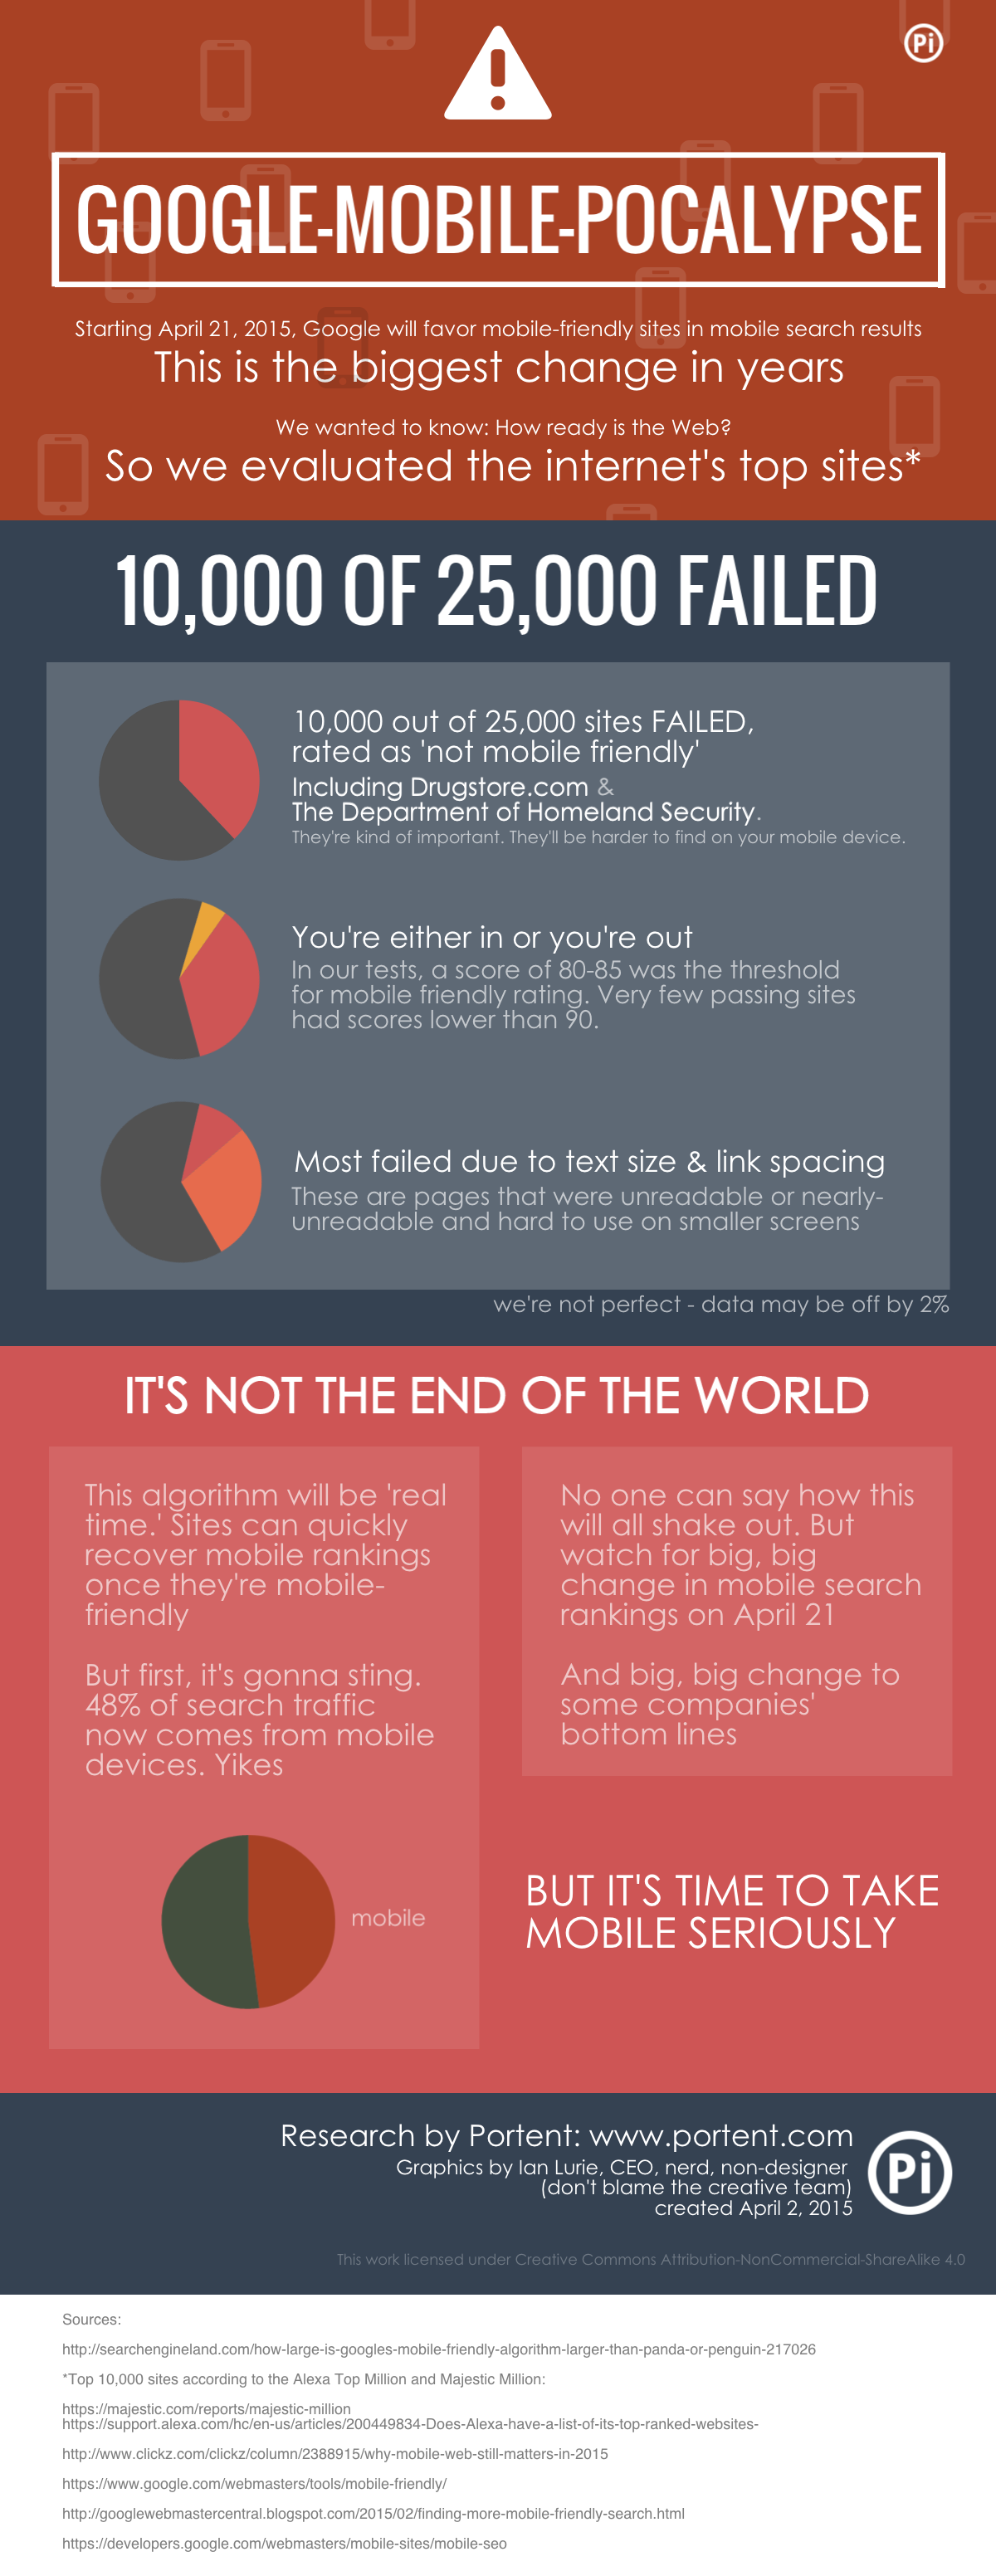 Mobile SEO and the End Times